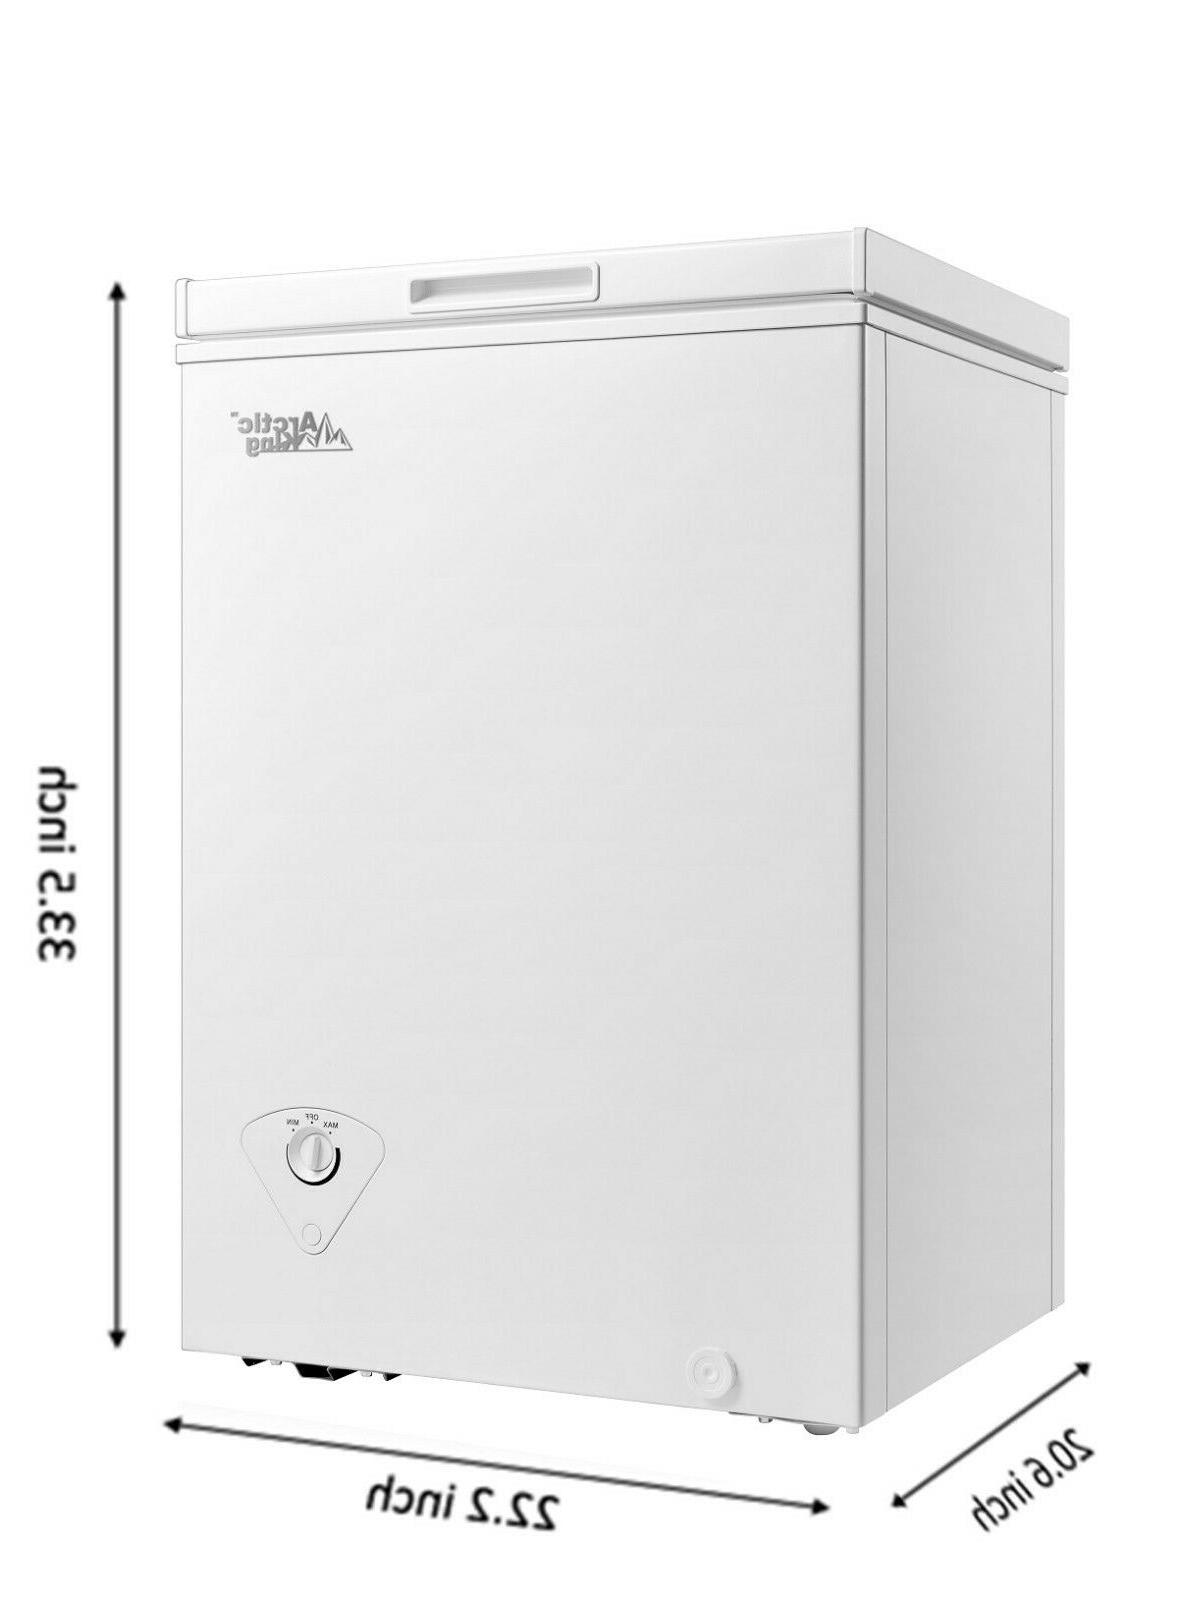 Arctic King 3.5 cu ft Chest Freezer White FREE SHIPPING - TO